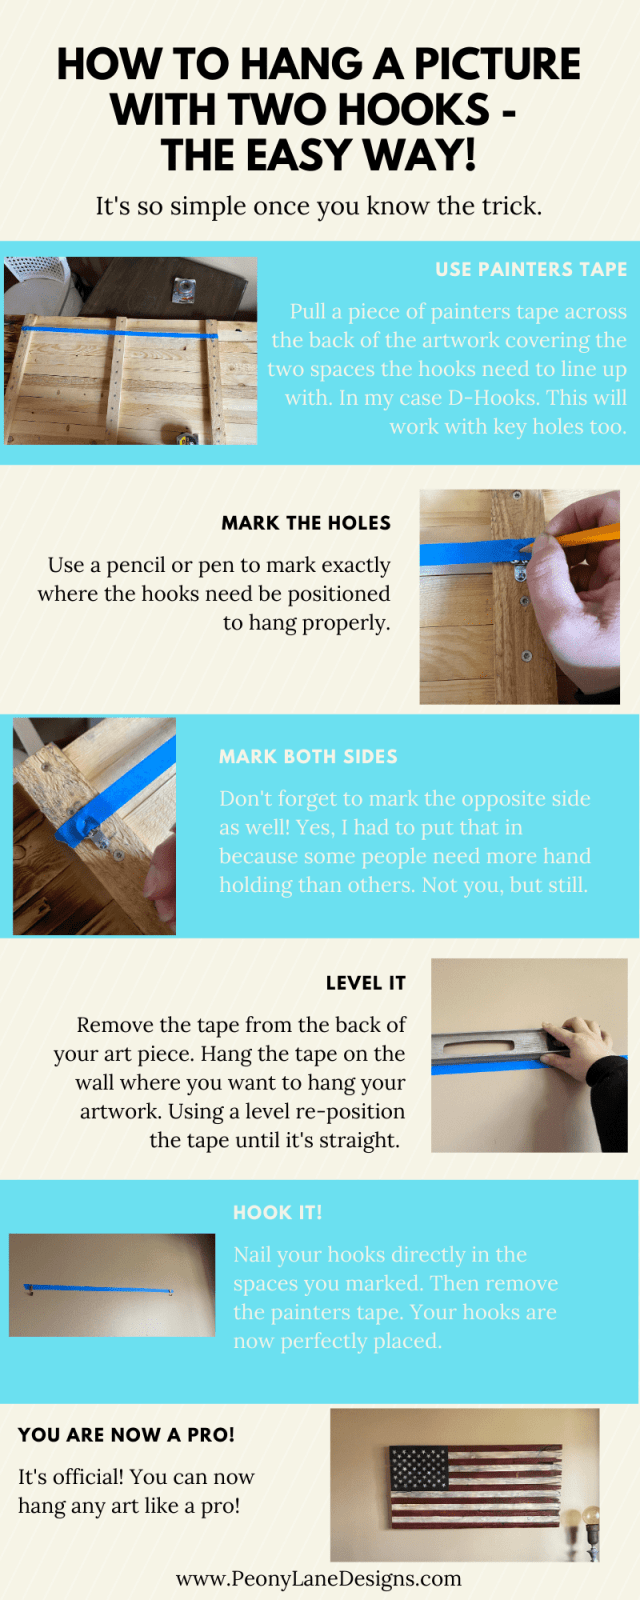 How to Hang a Picture with Two Hooks // Hang a Picture with Two Hooks // easy picture hanging ideas // picture hanging hack // hanging picture hacks // how to hang heavy picture // tricks to hanging pictures // picture hanging tips